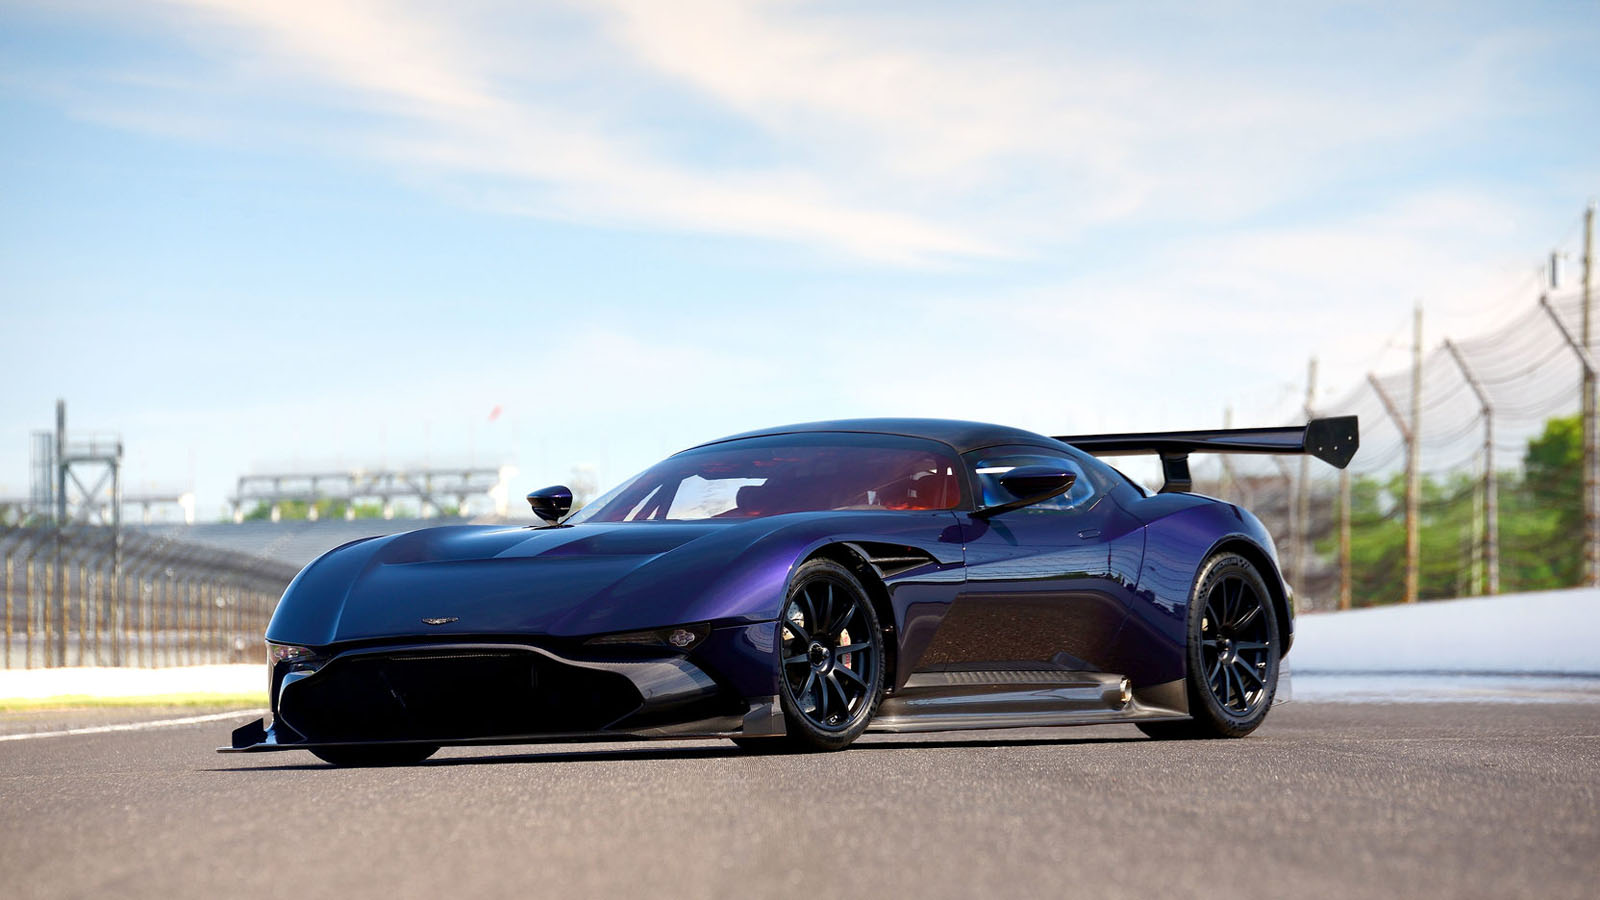 Aston Martin Vulcan Up For Auction In Monterey